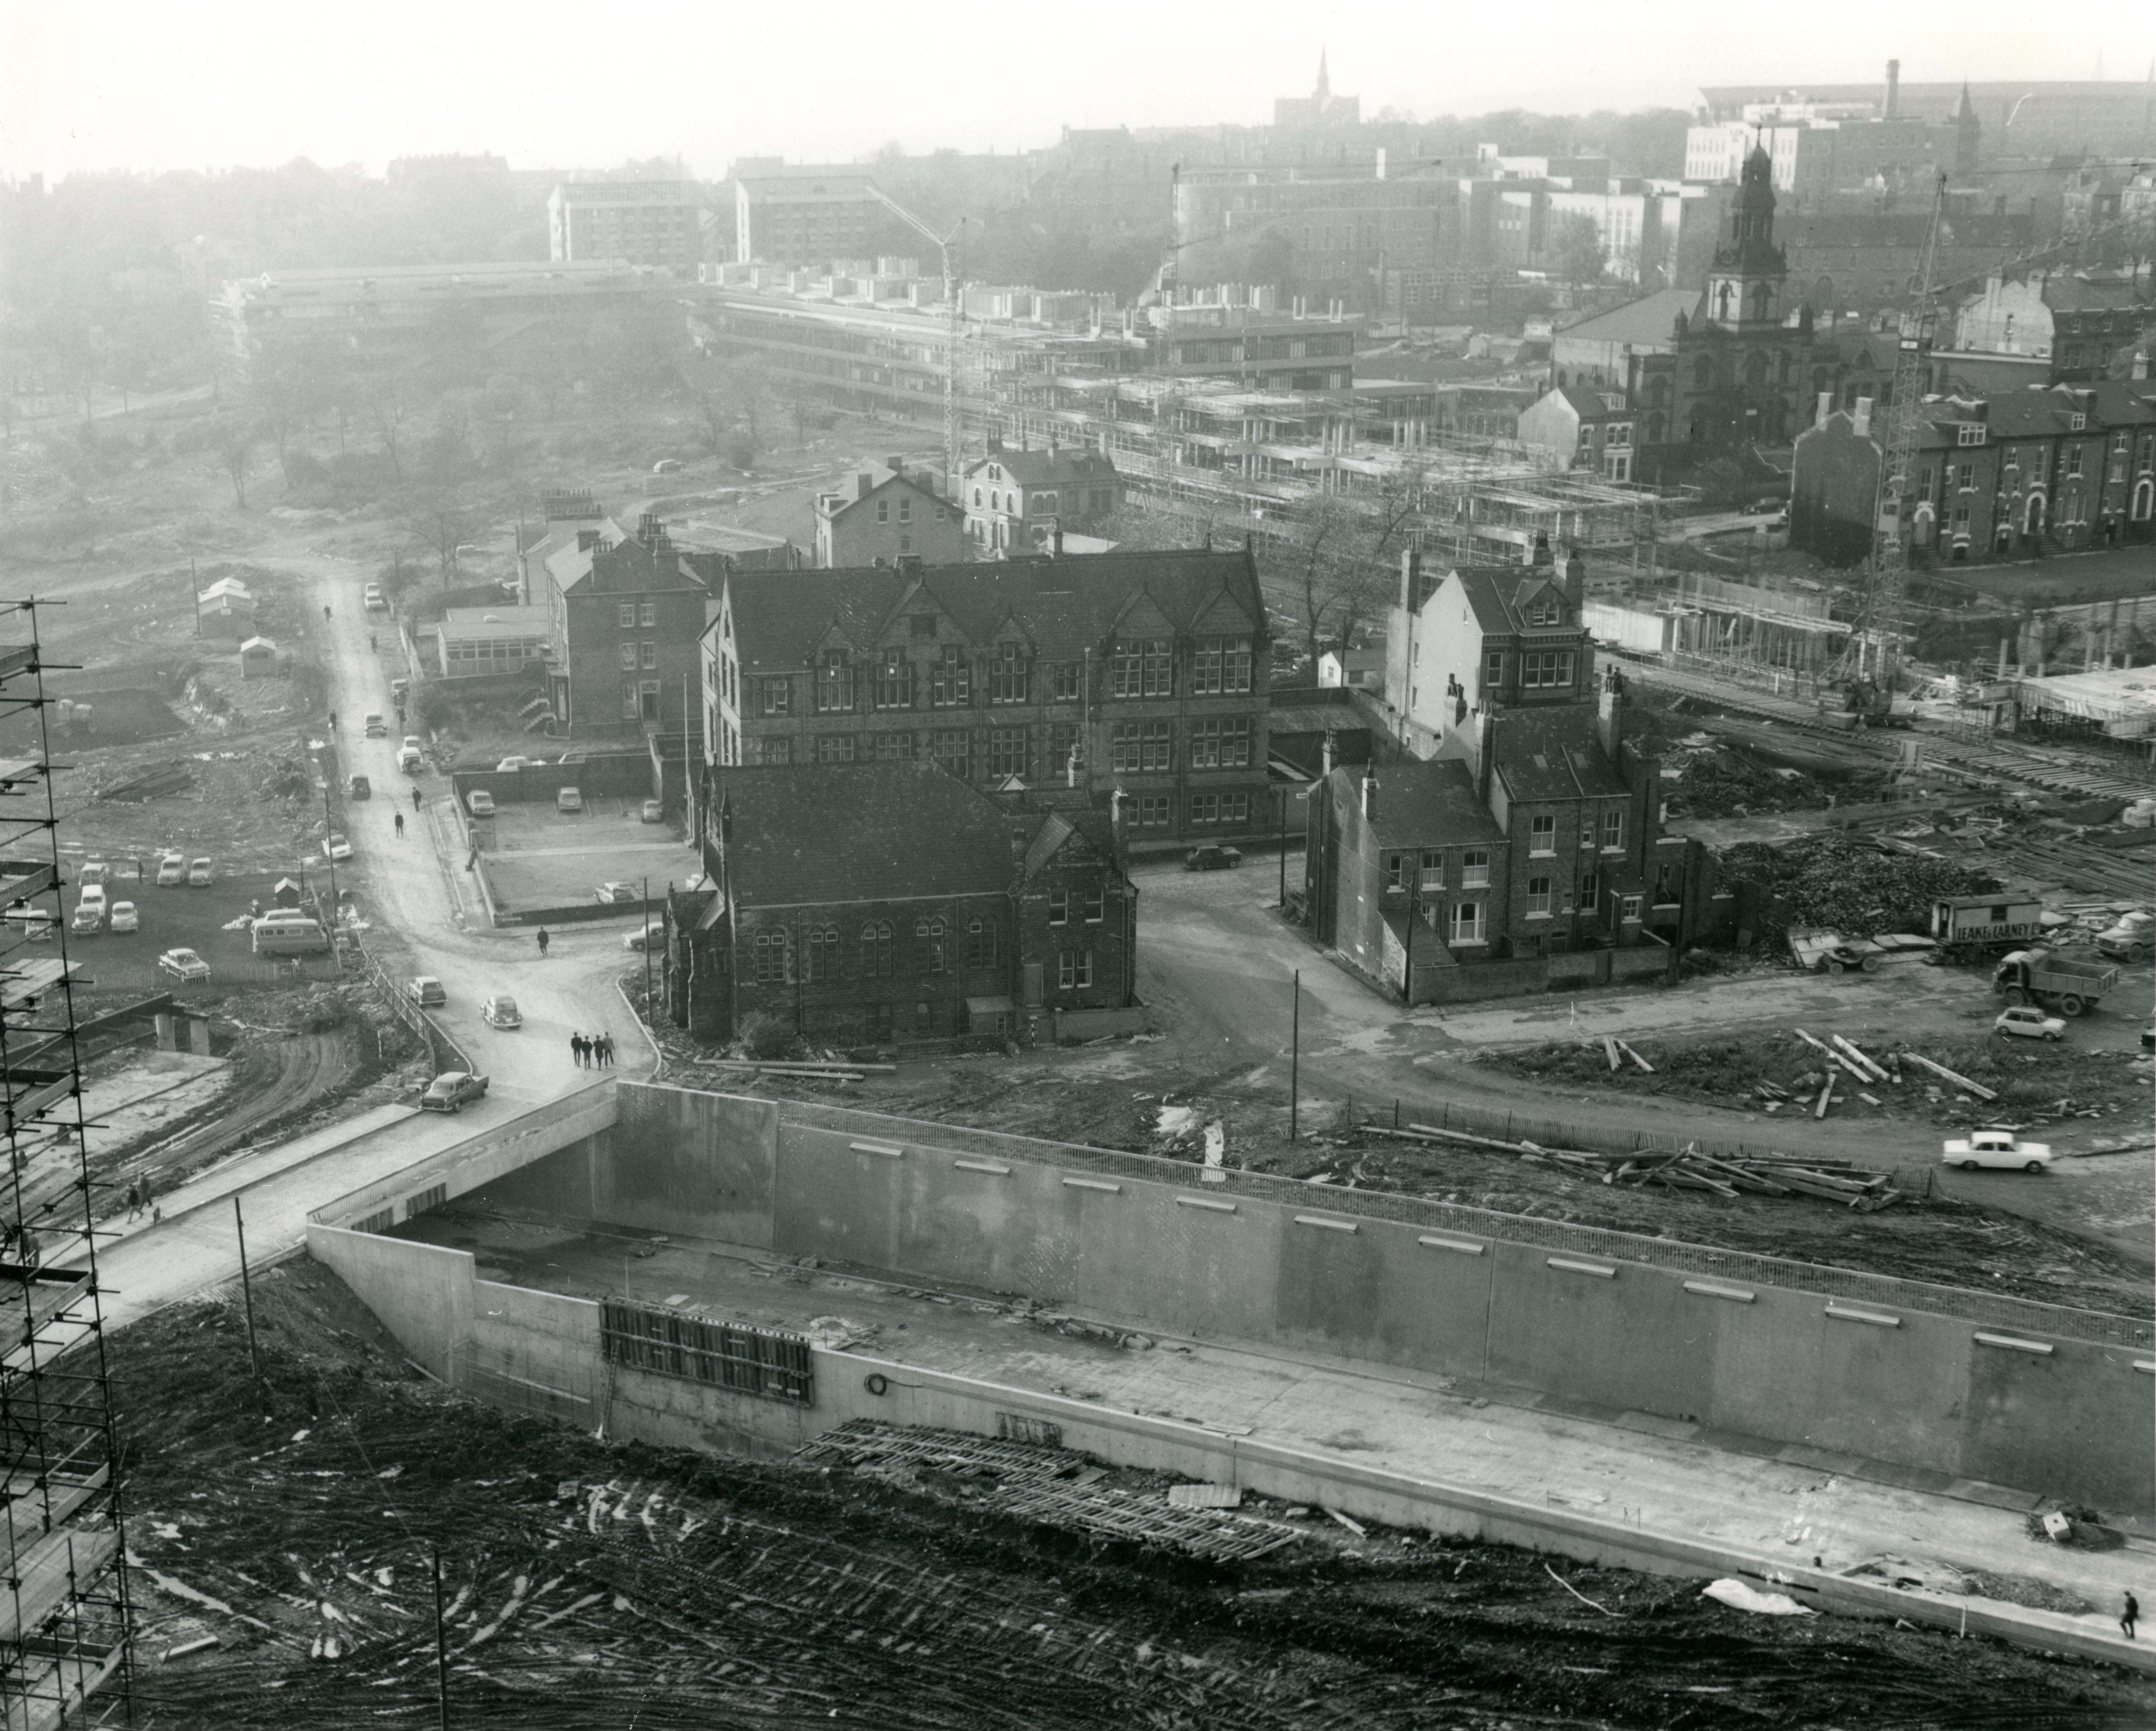 Leeds ring road under construction in the 1960s. Source: Leeds Civic Trust.